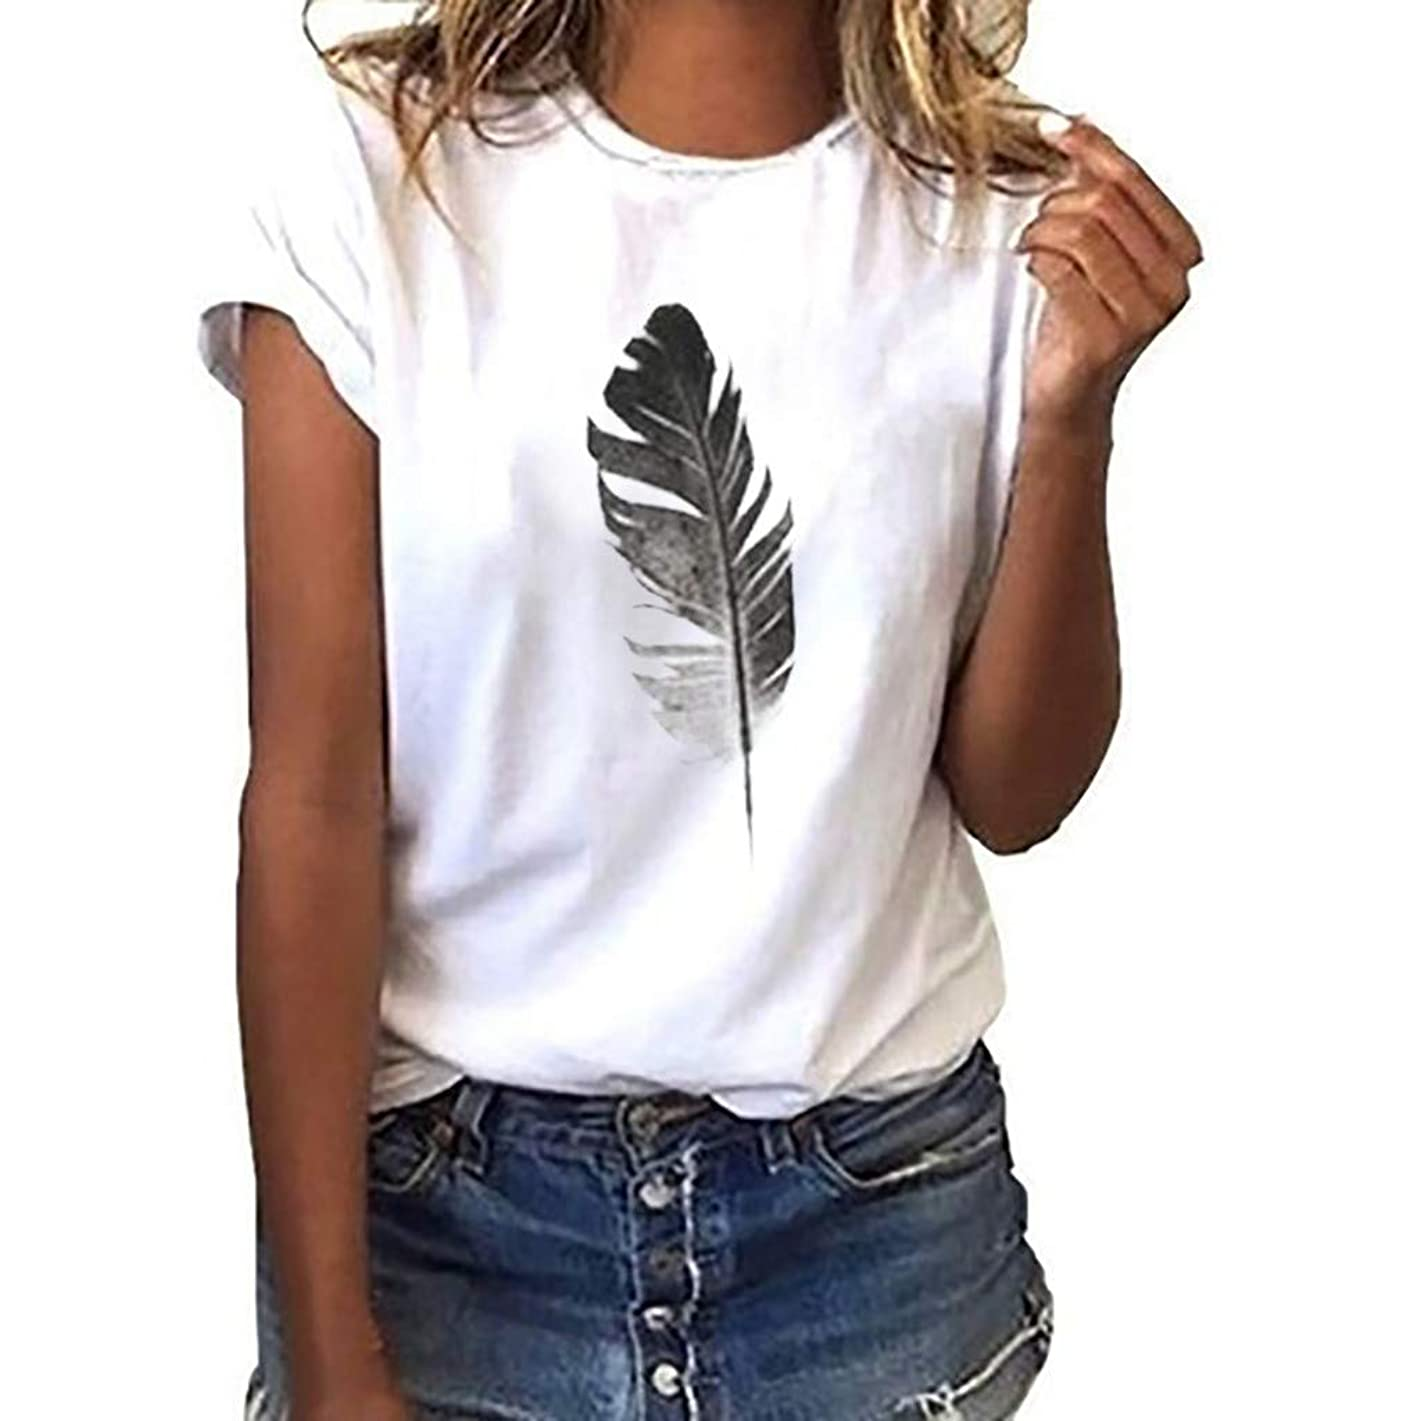 Women's T-Shirt Summer Short-Sleeved Leaf Graphic Print Tees Casual Loose Crew Neck Blouse Tops